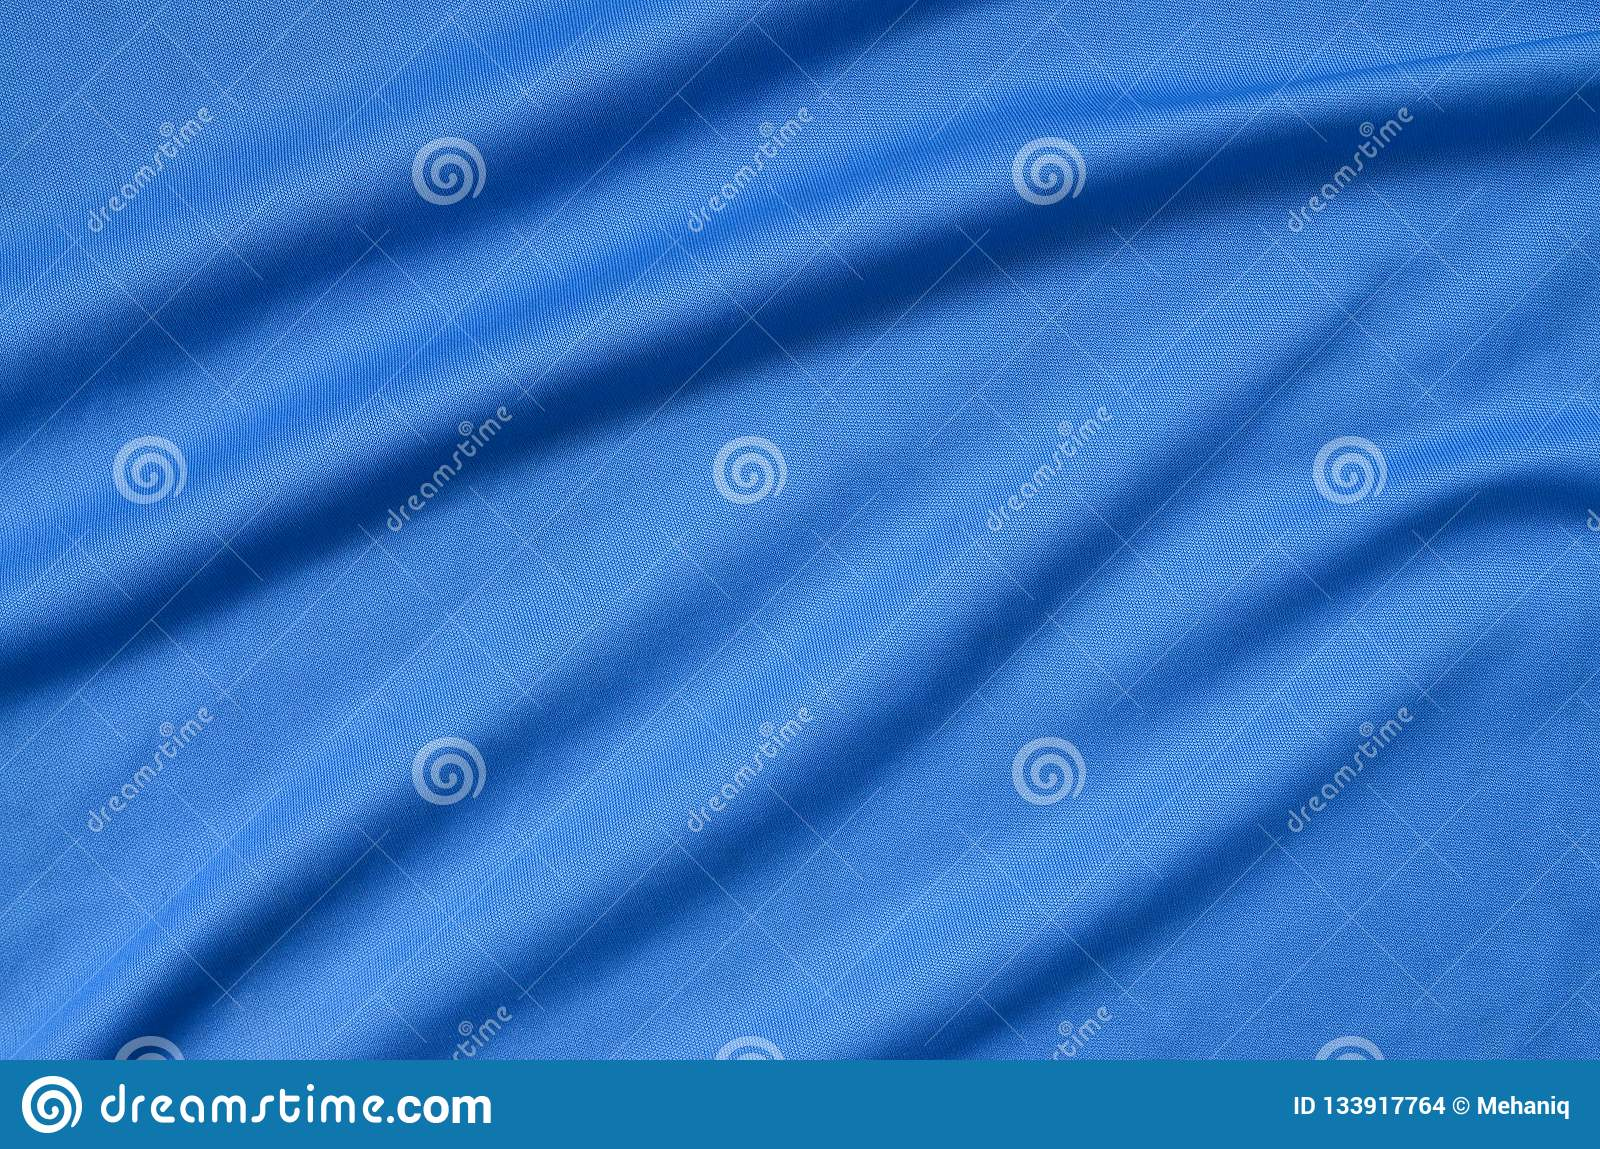 Detailed polyester blue fabric texture with many folds